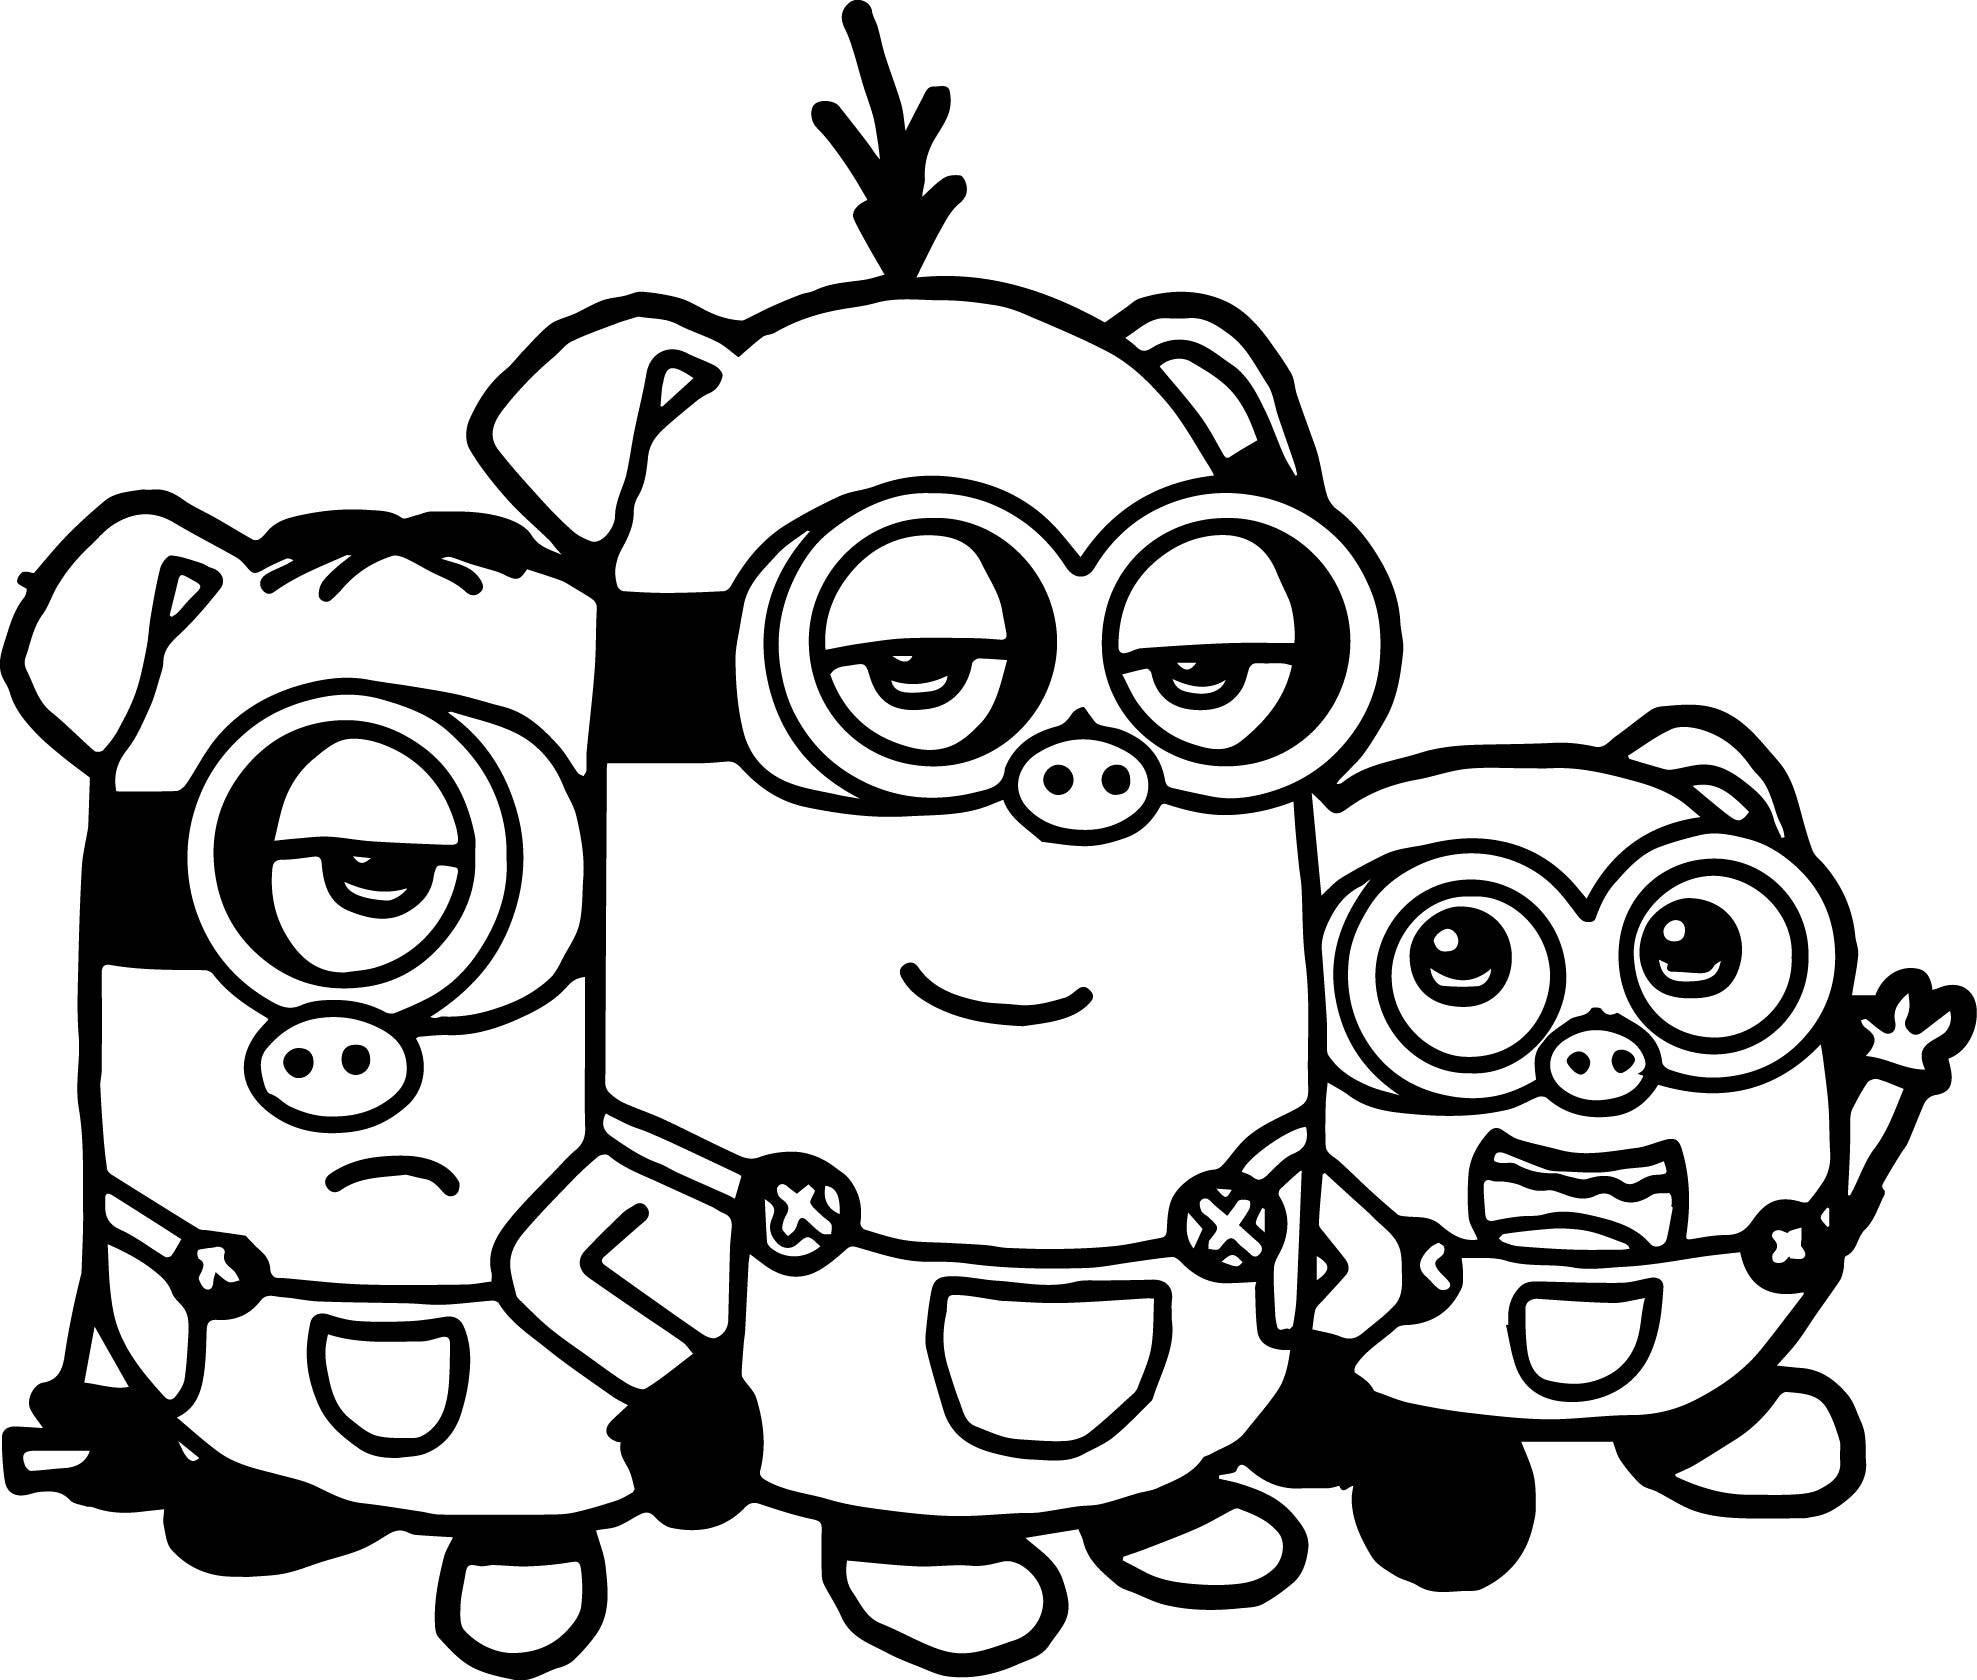 the three little pigs minions coloring page wecoloringpage